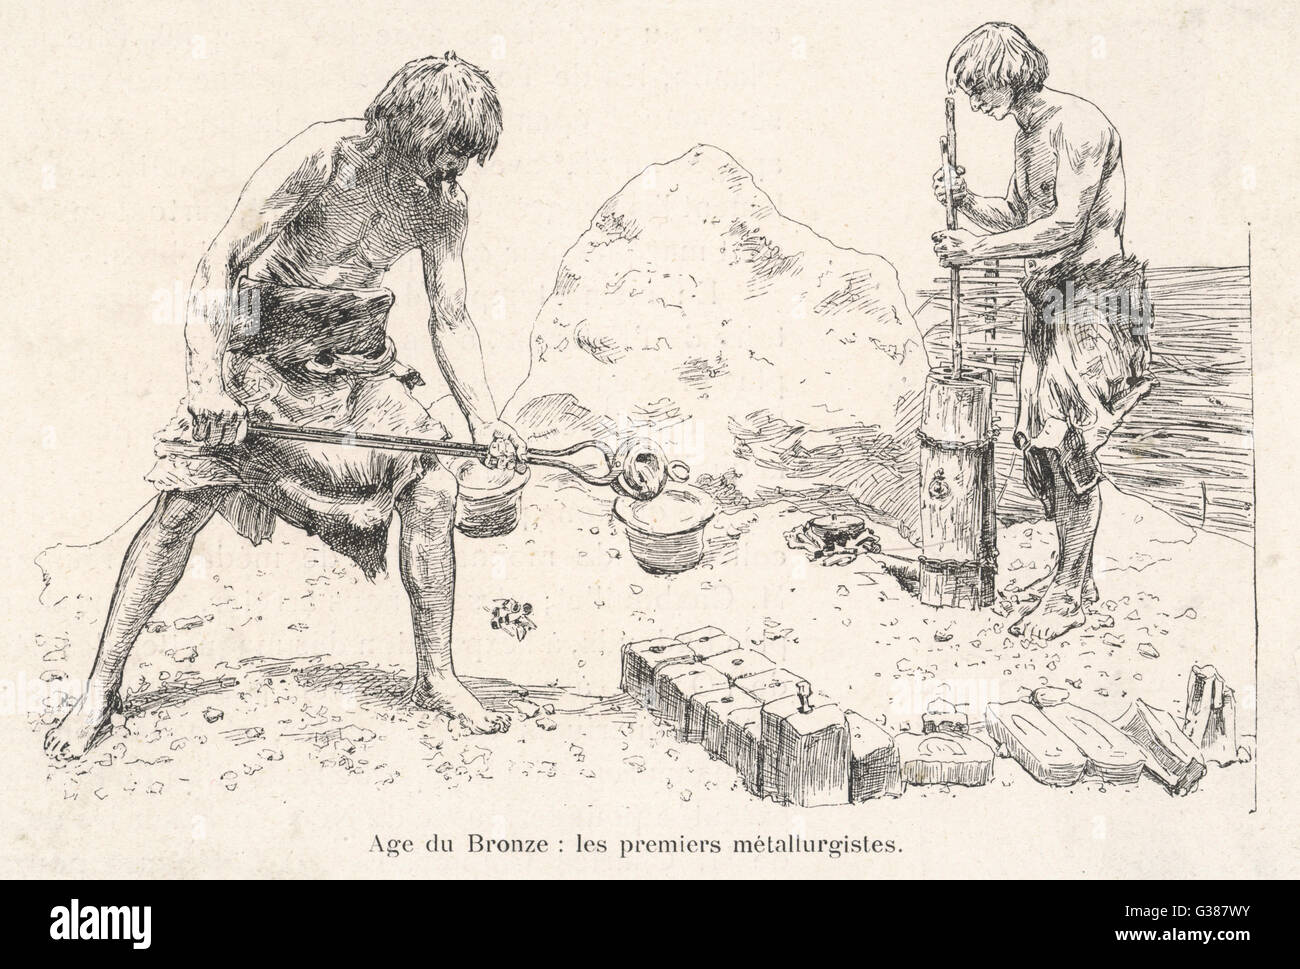 Bronze Age metal workers         Date: circa 2000 BC - Stock Image